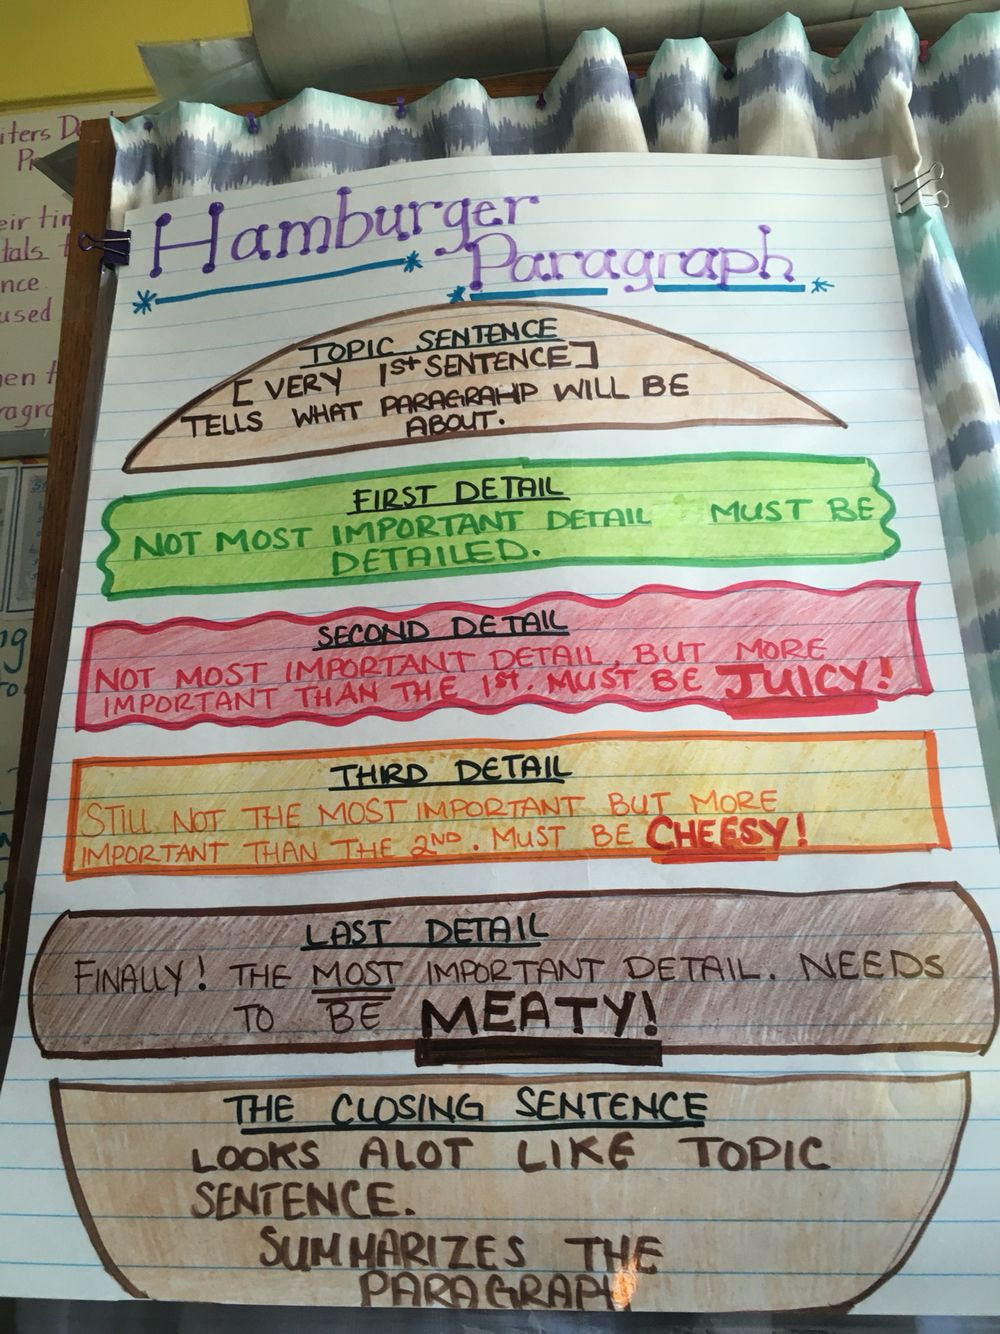 Teaching Paragraph Writing Worksheets Hamburger Paragraph for 2nd Grade Writing Includes topic